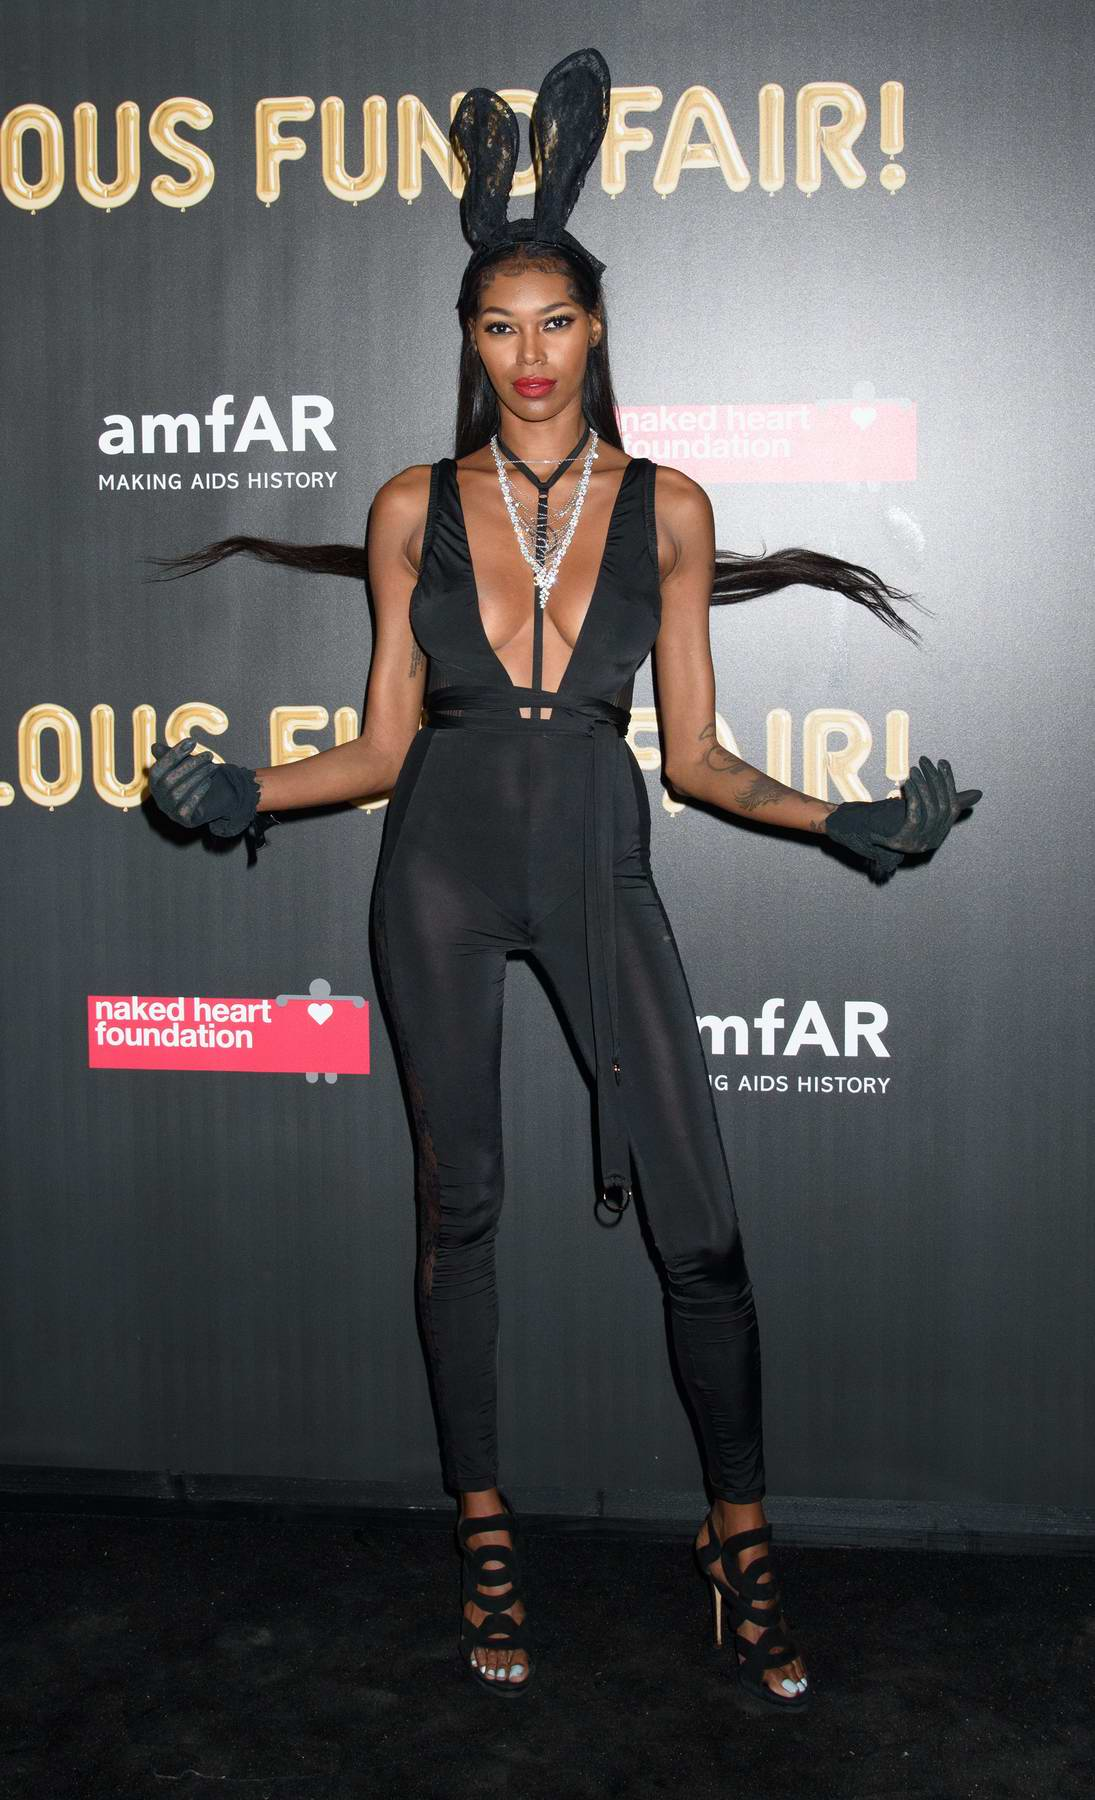 Jessica White at the 2017 amfAR Fabulous Fund Fair at Skylight Clarkson SQ in New York City